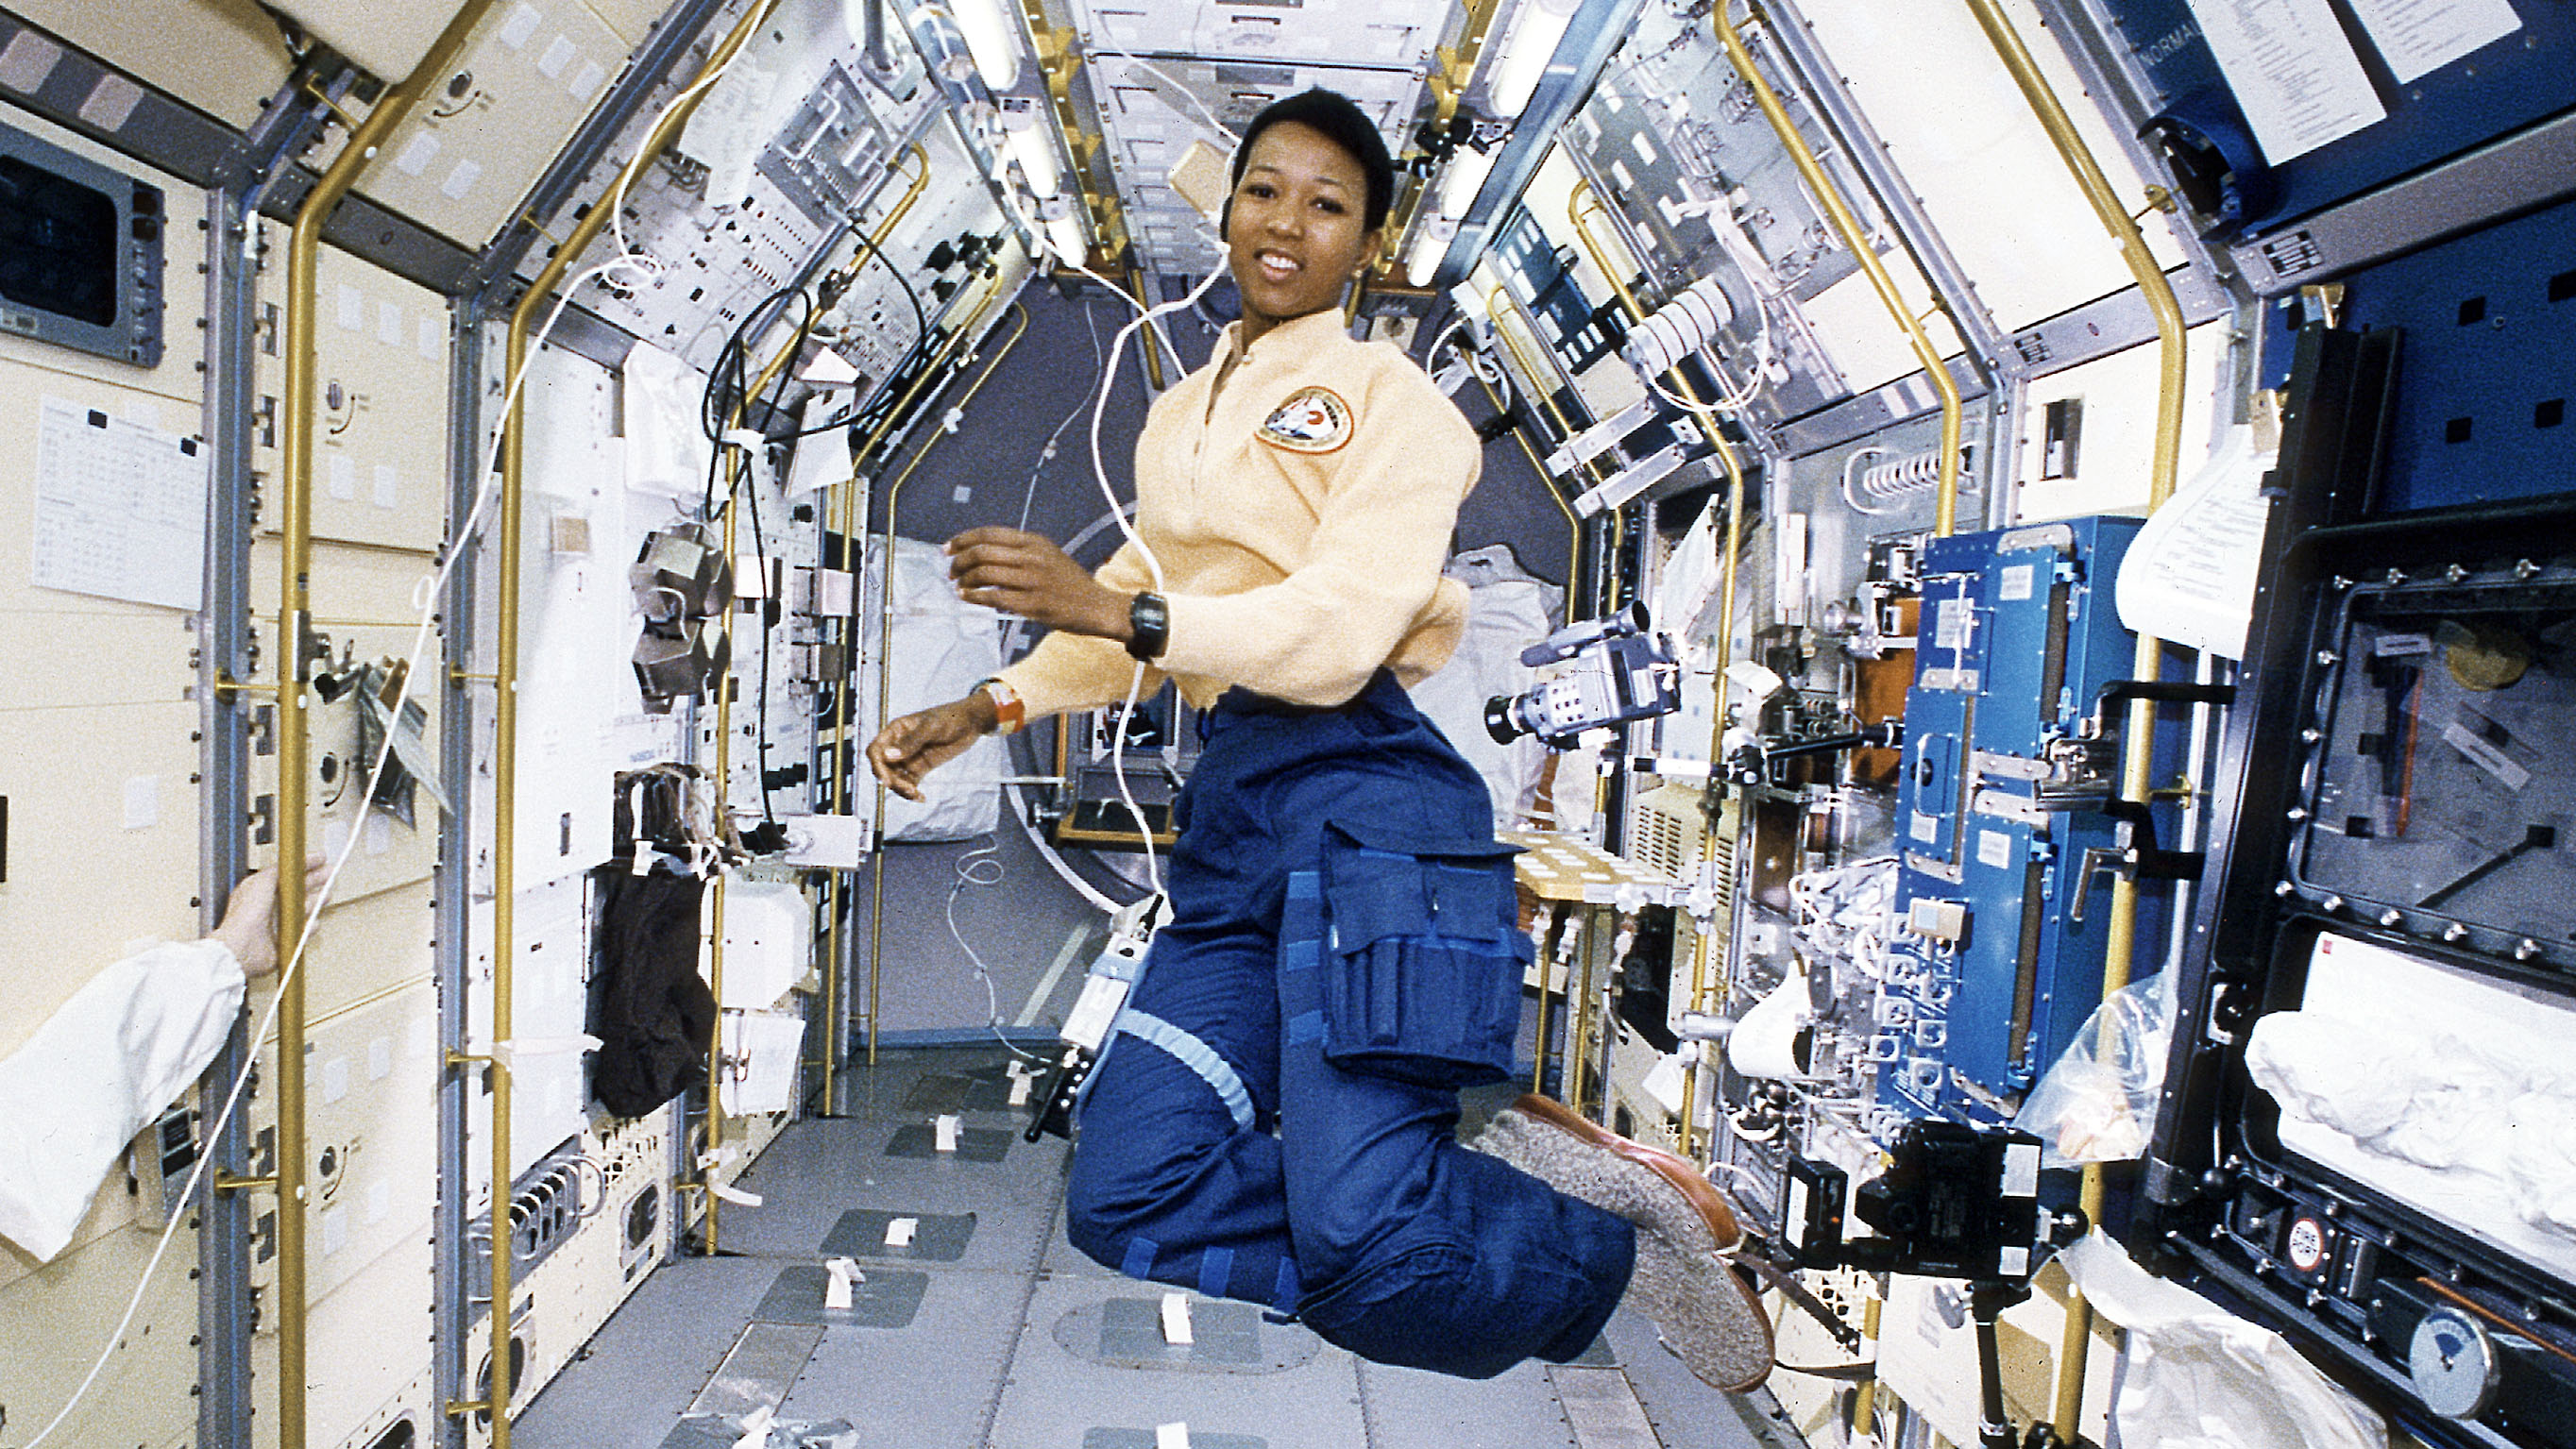 Dr. Mae C. Jemison during her 1992 mission as crew member on the space shuttle Endeavor.